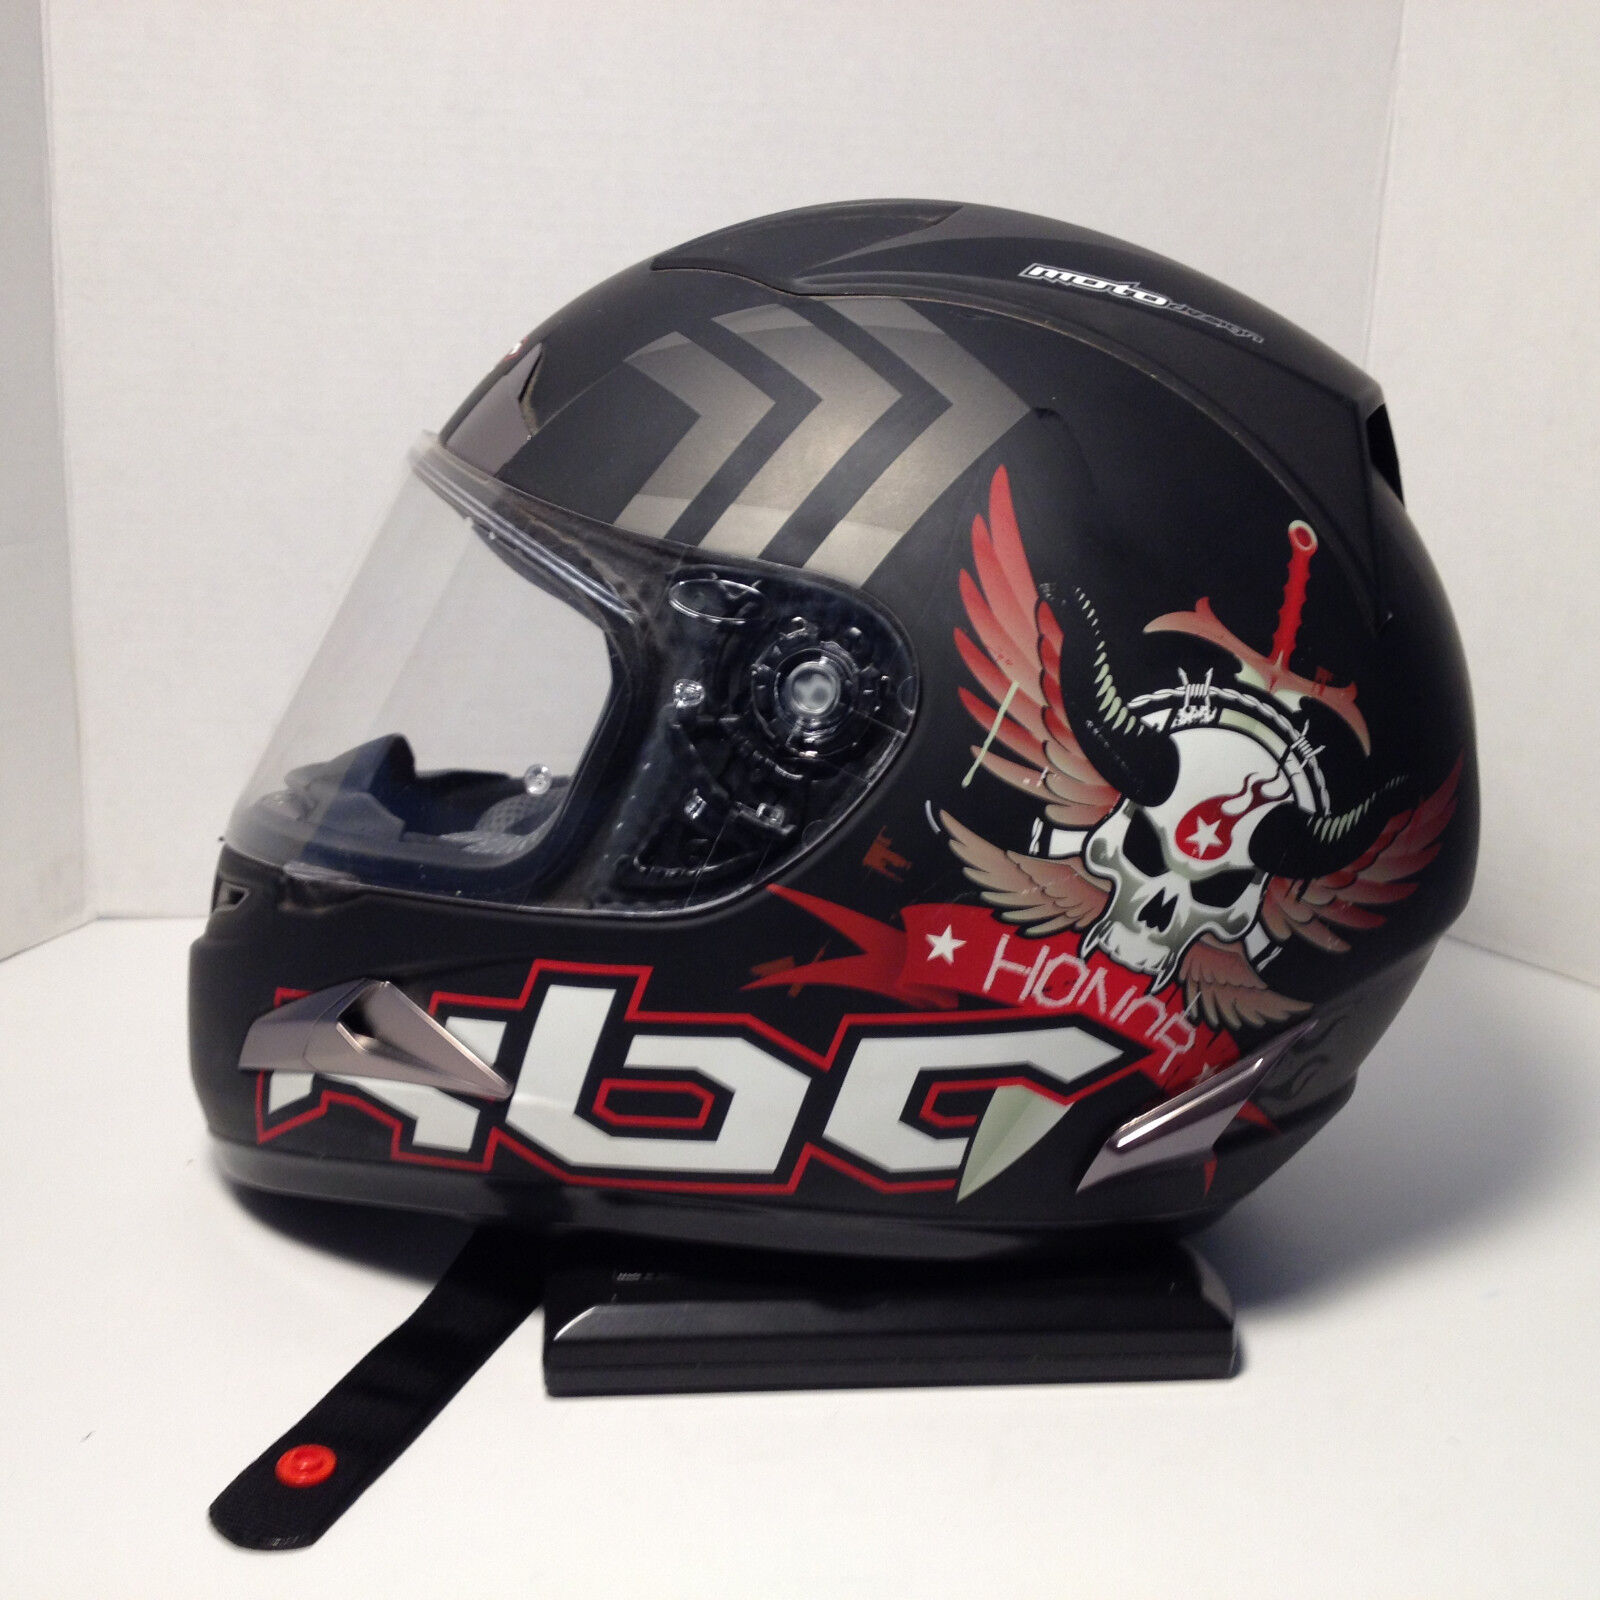 Kbc motorcycle helmet honor and strength moto design size large 59-60cm FTOshop